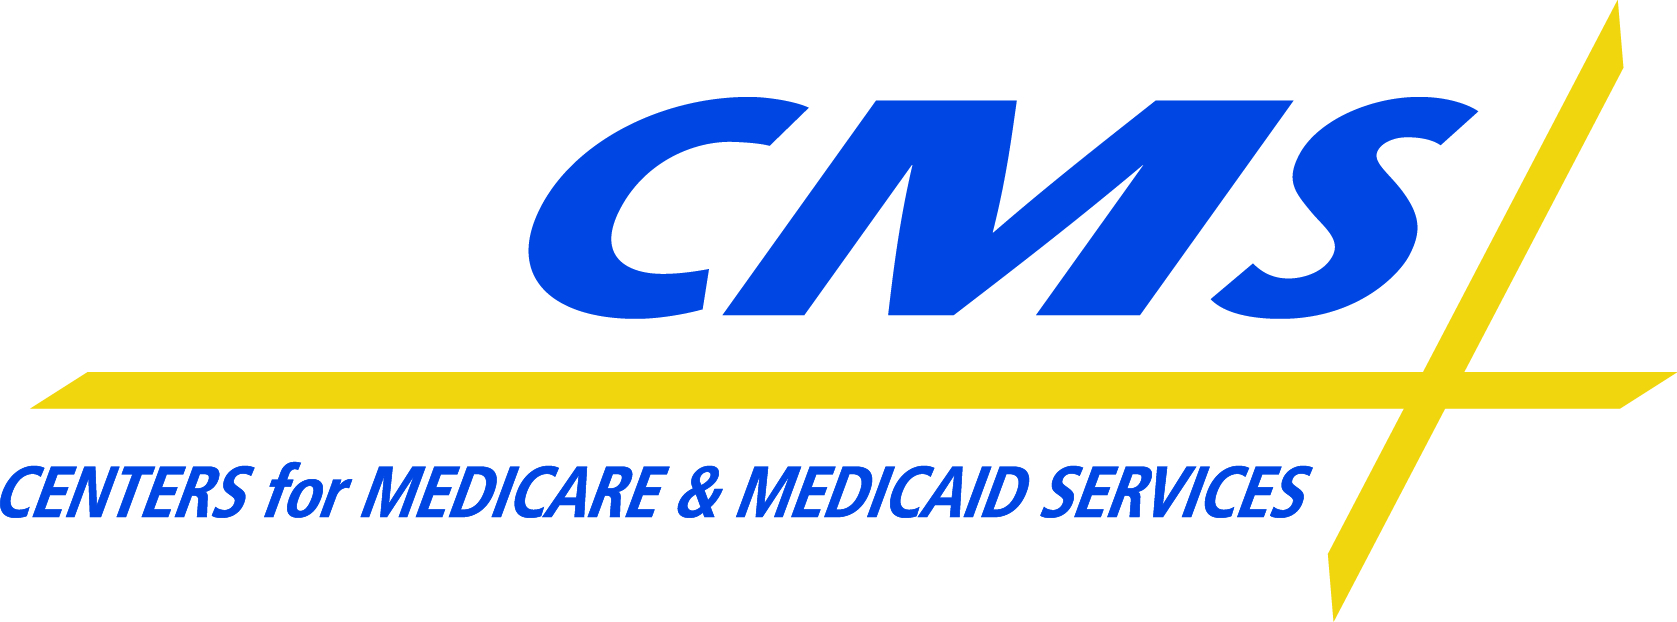 CMS Unveils New Voluntary Bundled Payment Program